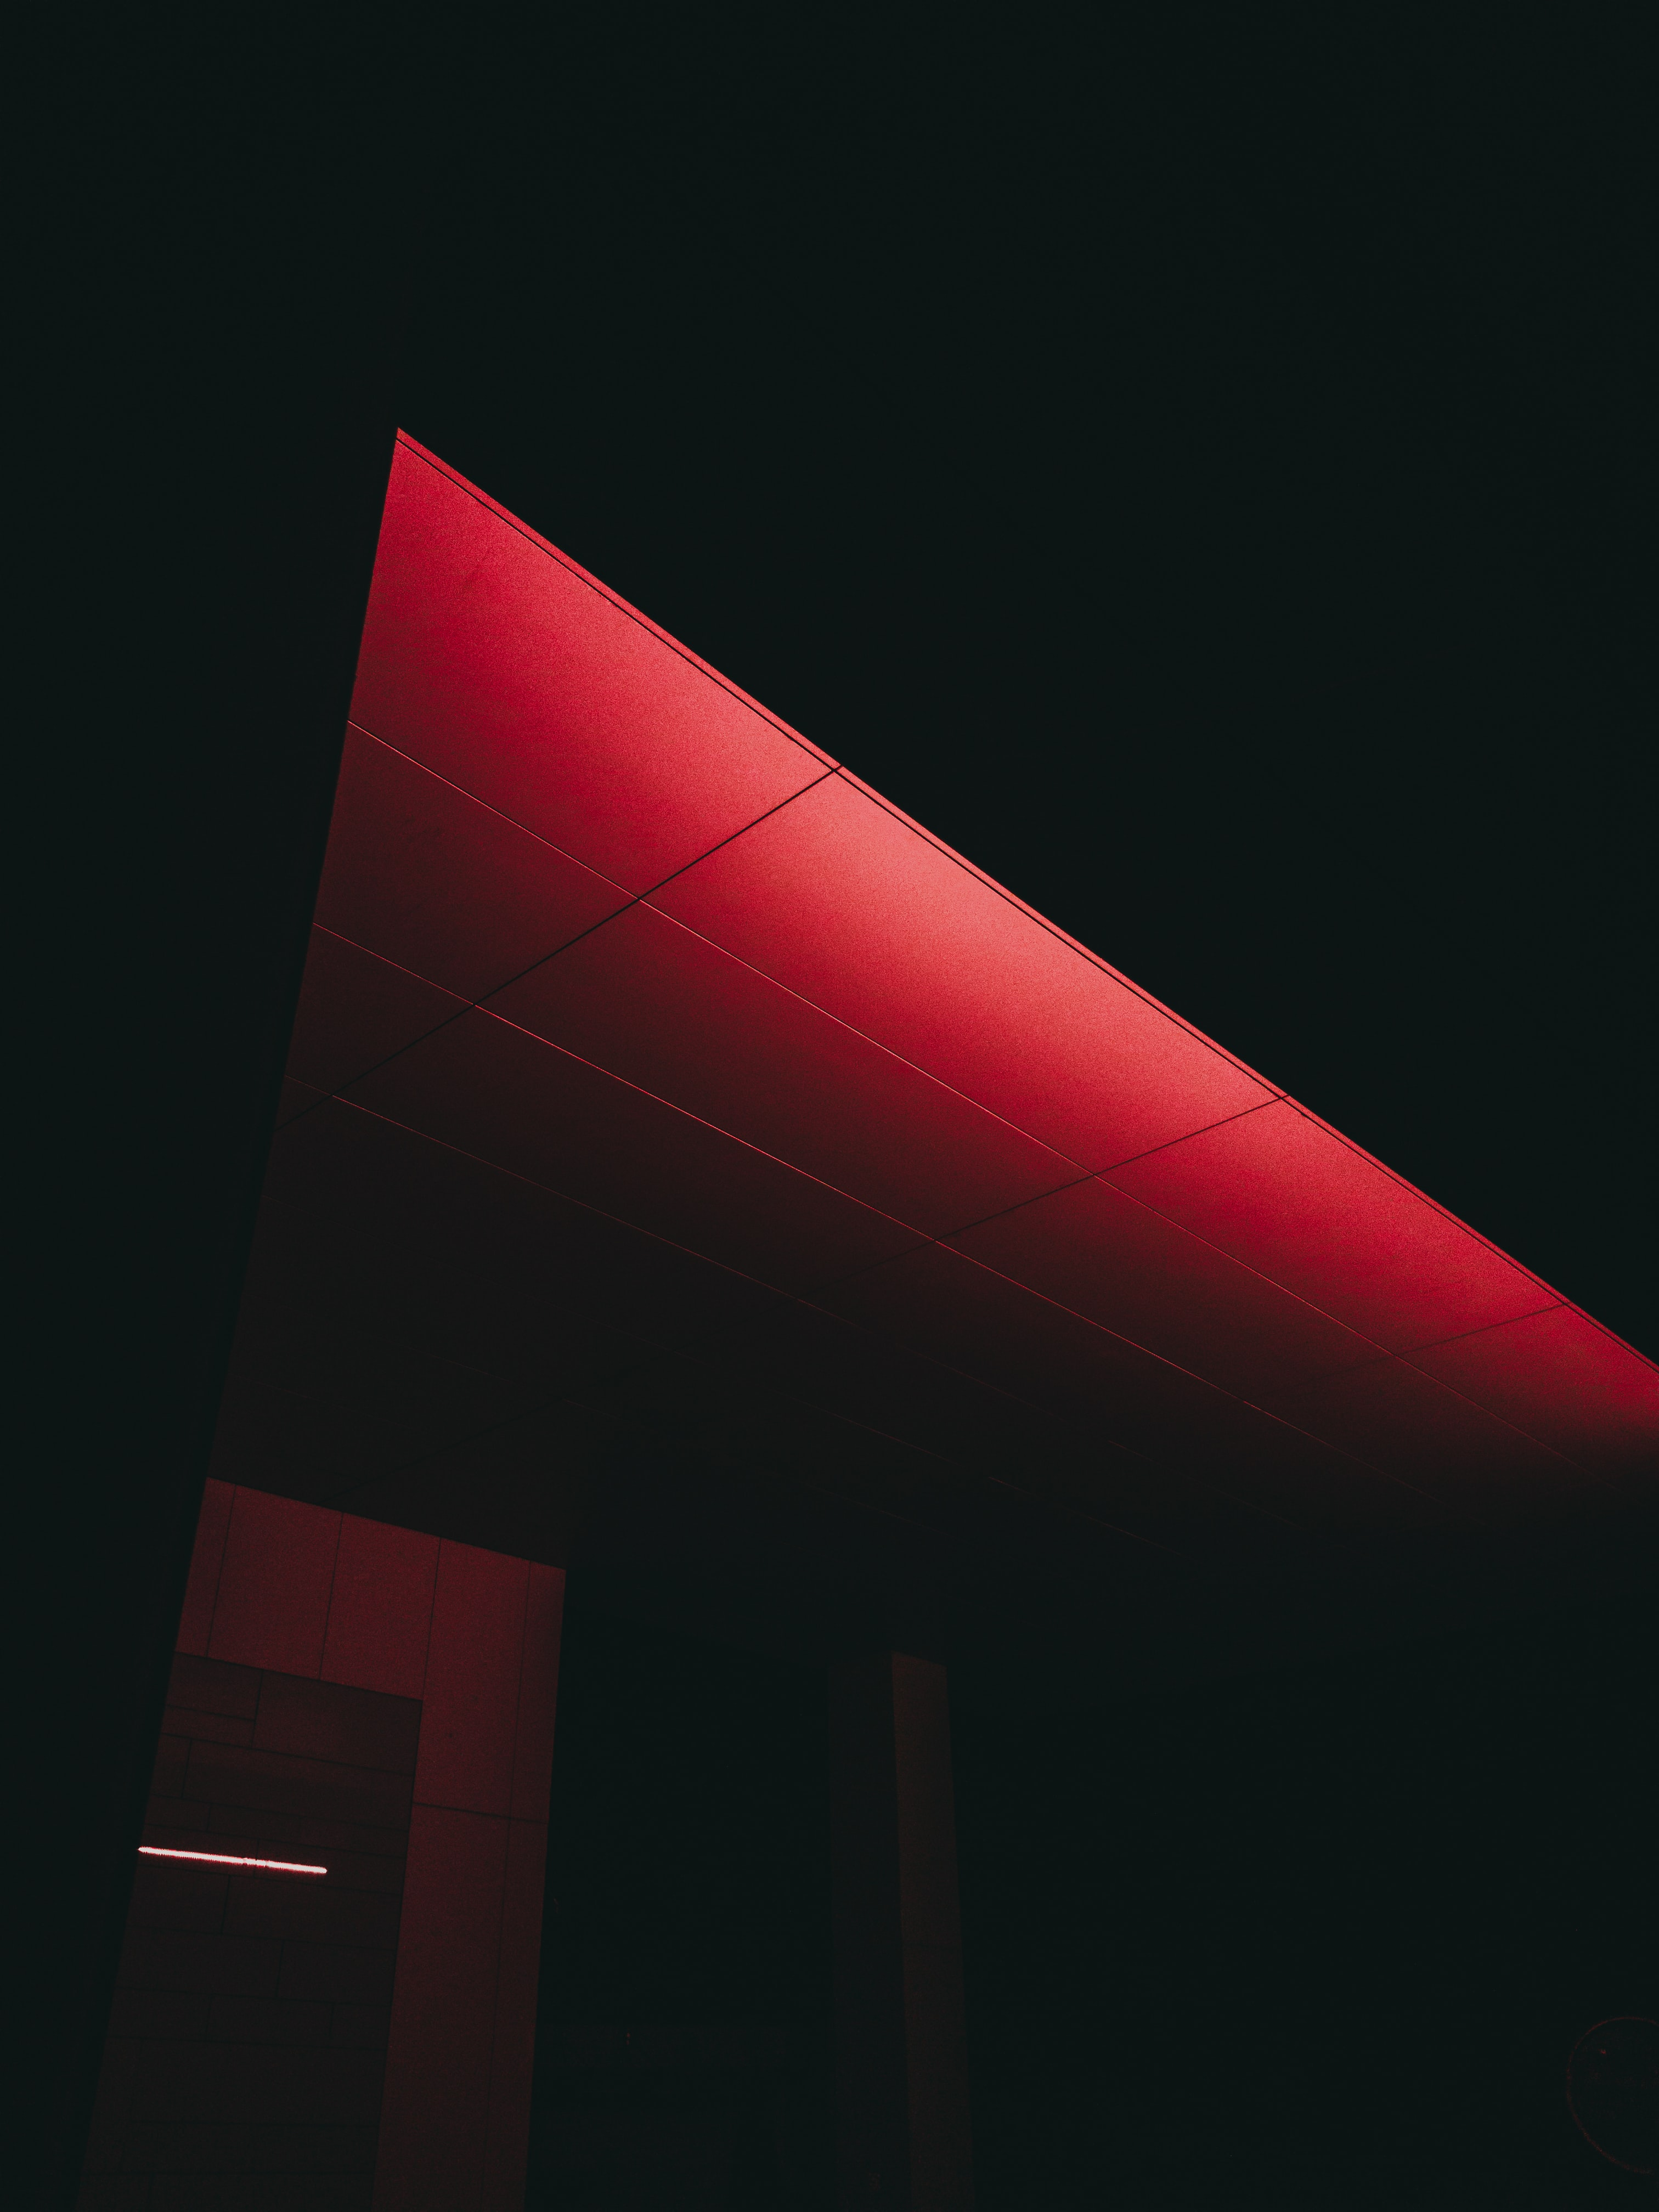 red lightened ceiling